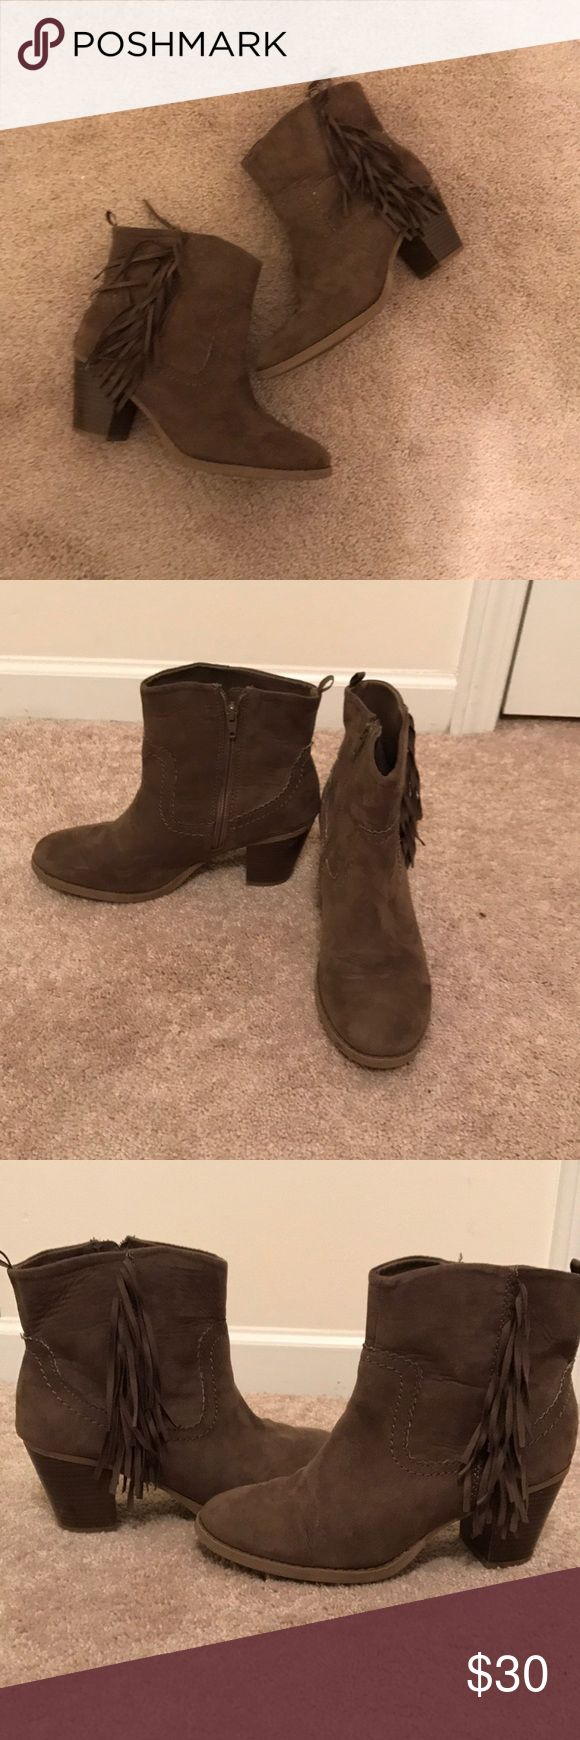 GAP Tan fringe booties GAP tan fringe booties. Super adorable! Side zipper to make putting them on easier. In great condition. The right bootie has a tiny speck of dirt. Can only see if you really look for it. The heels are a little scuffed up as shown in pic. Heel is 2 1/2 inches. Suede like material. GAP Shoes Ankle Boots & Booties